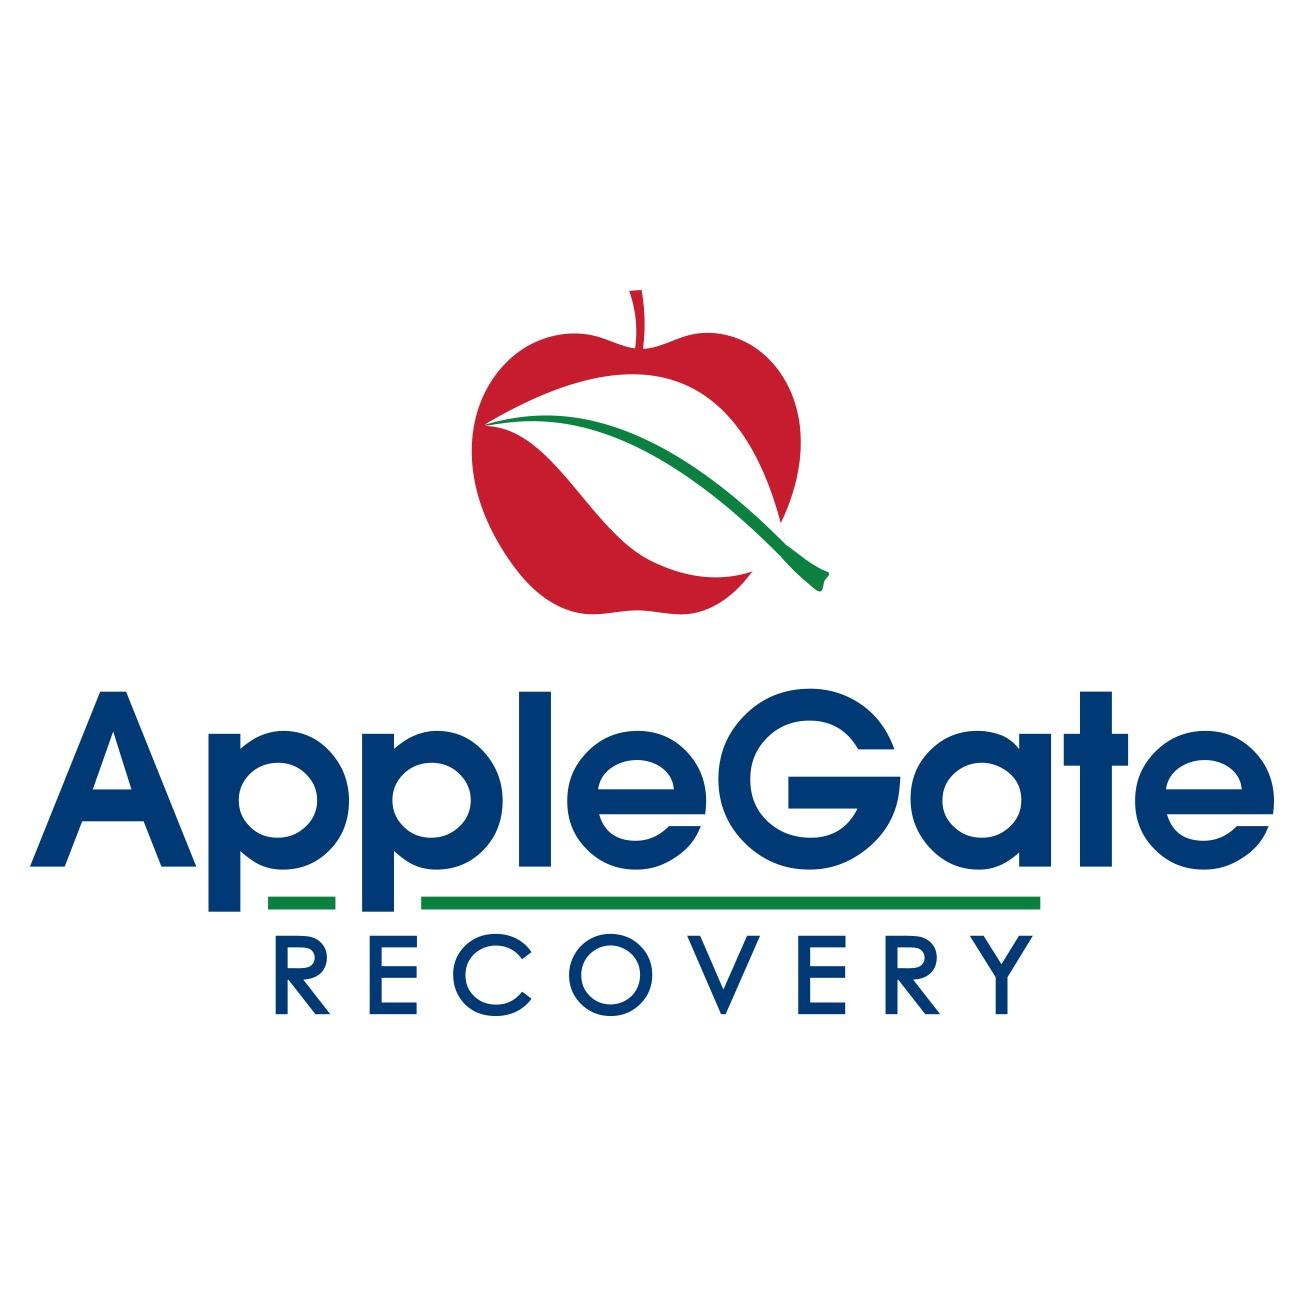 AppleGate Recovery Crestview Hills image 4